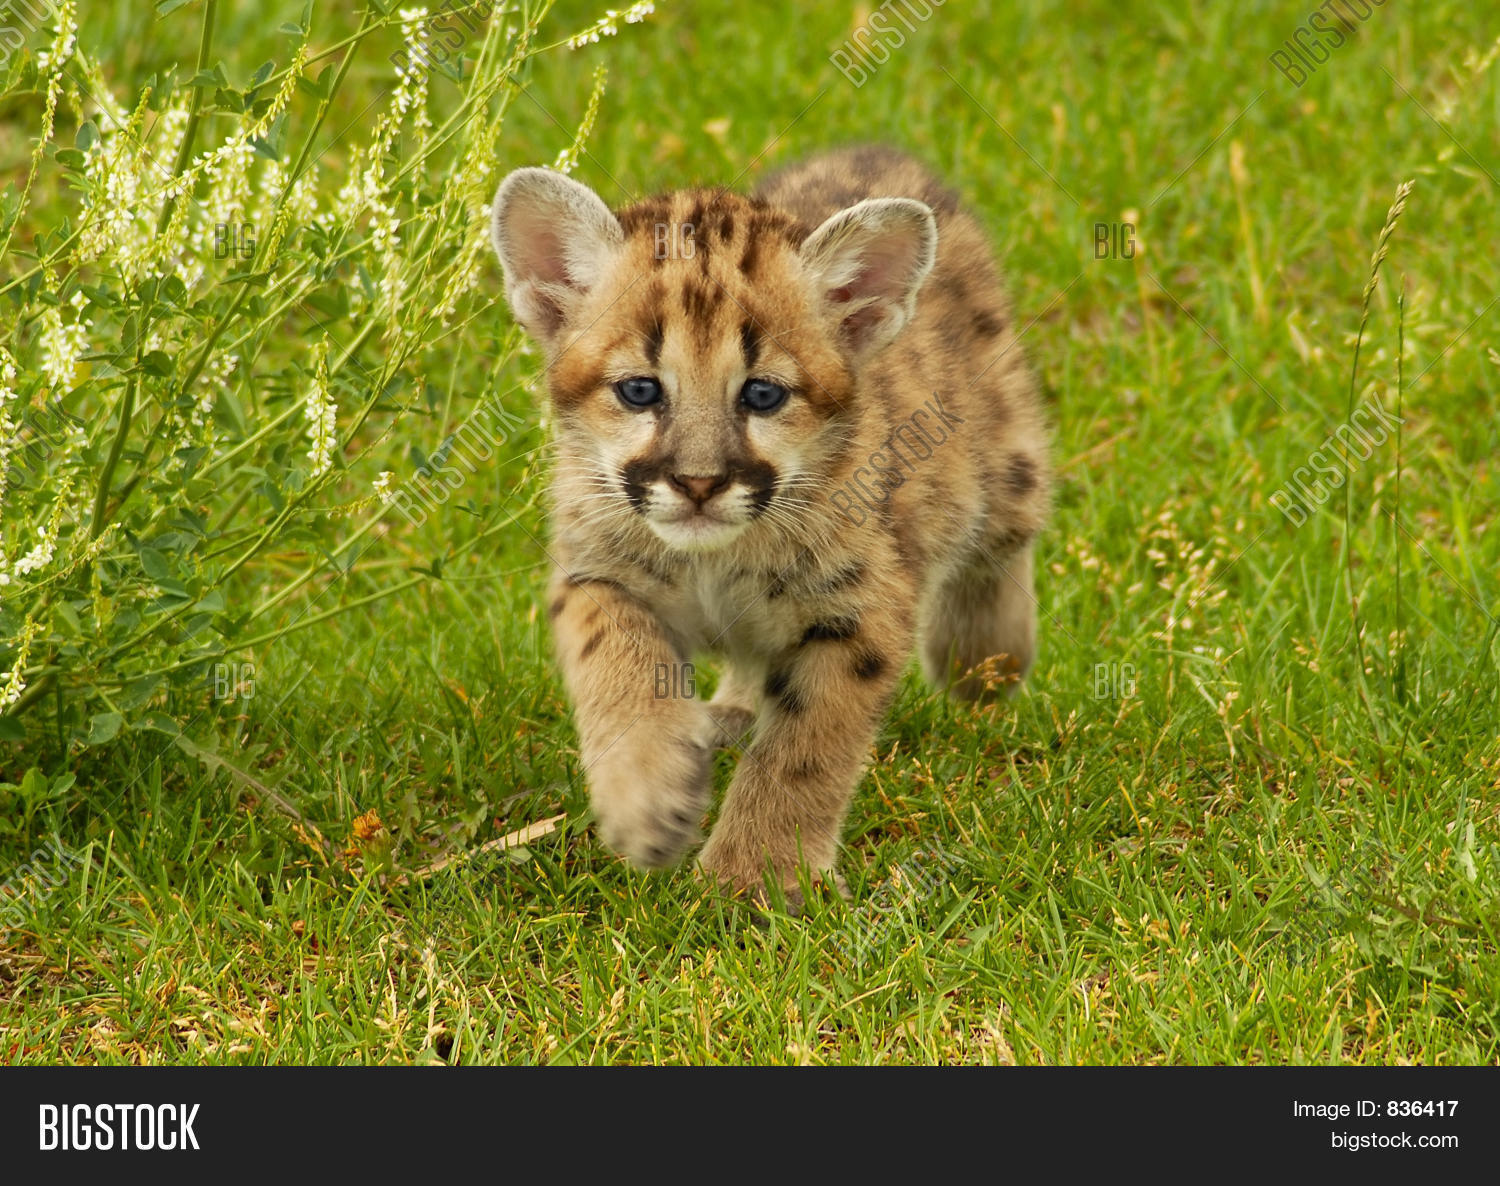 Baby Mountain Lion Image Amp Photo